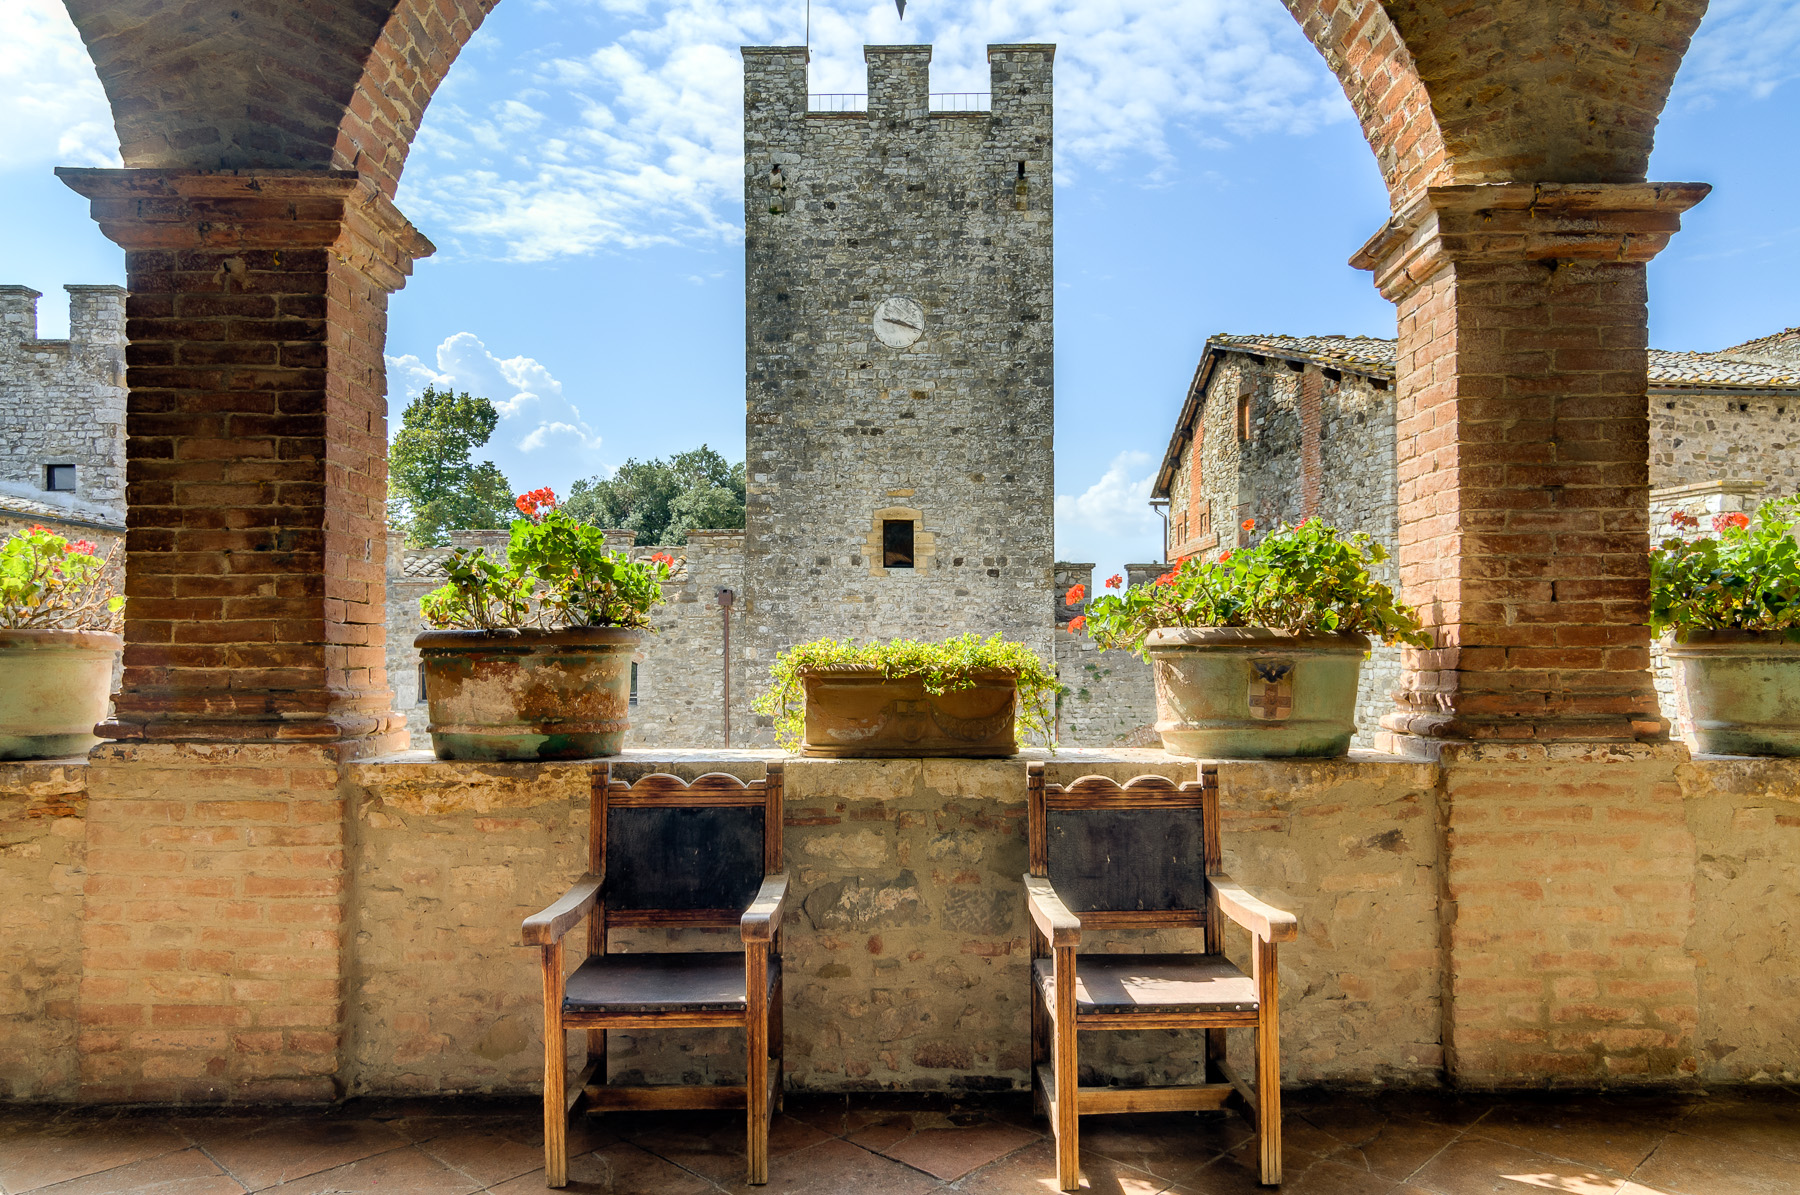 for Sale at Glamorous Medieval Castle near Siena Siena, Siena 53011 Italy